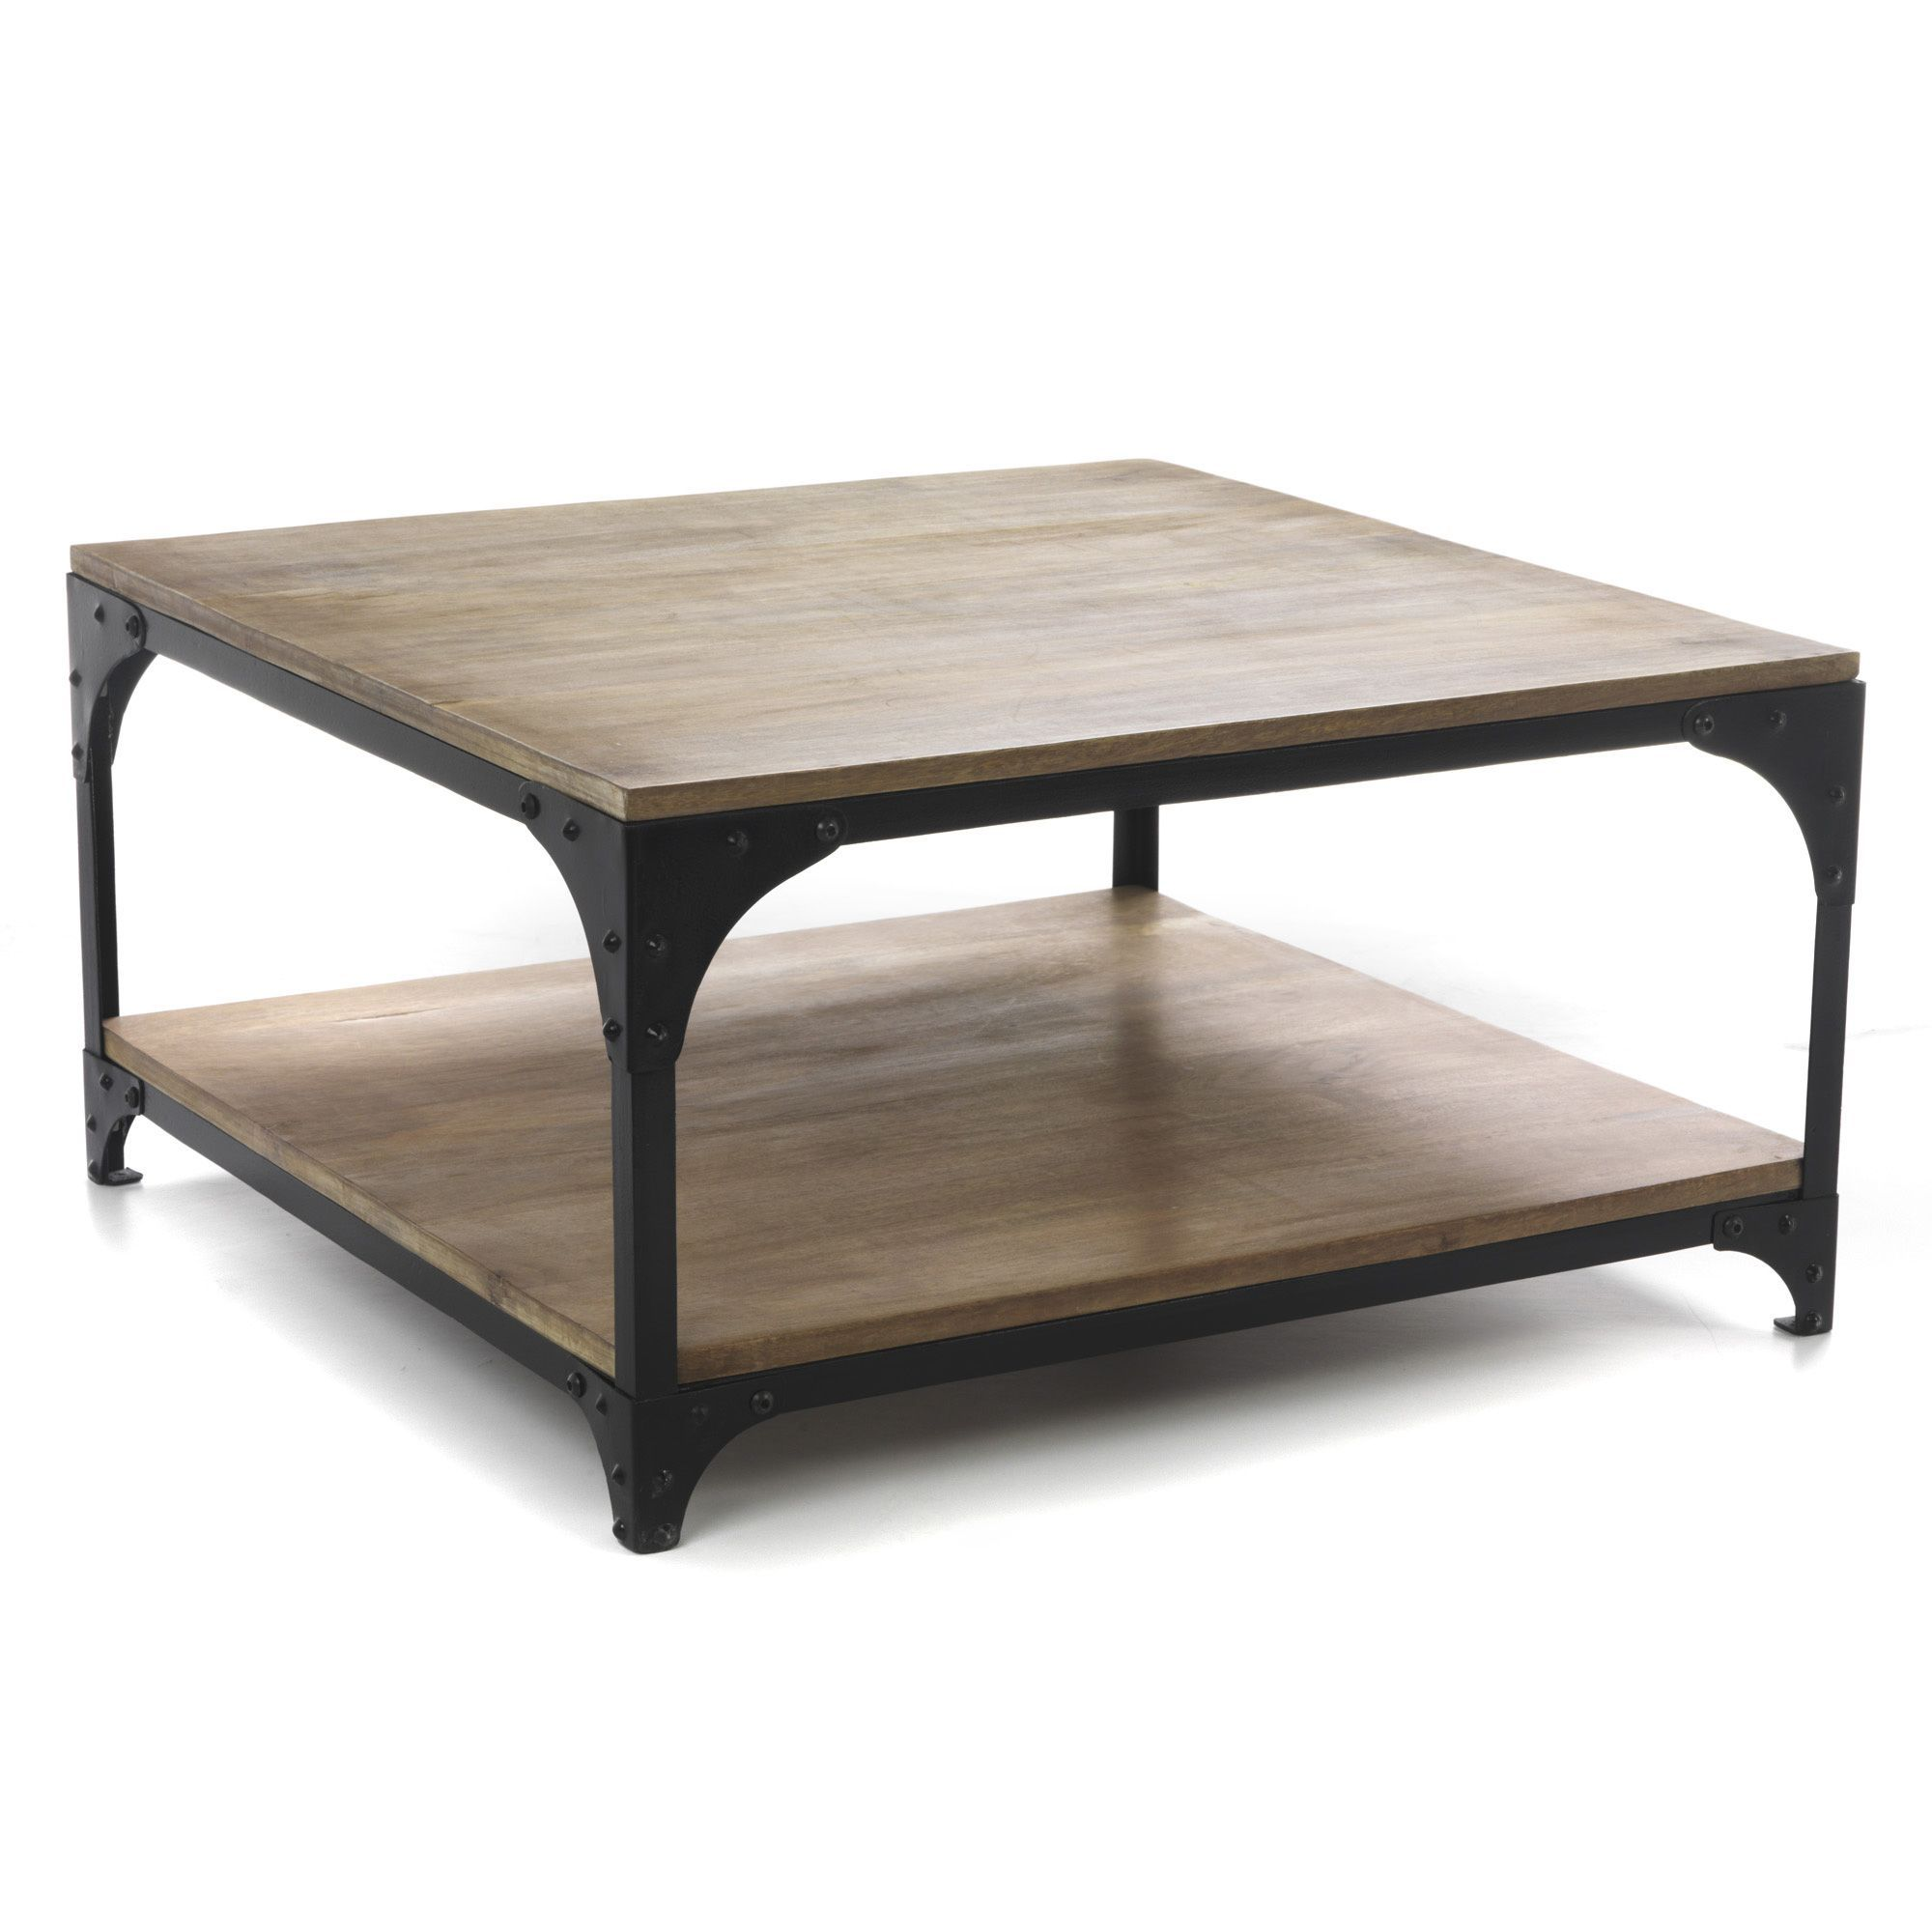 Table basse carr e industrielle naturel new ately les for Table salle a manger carree